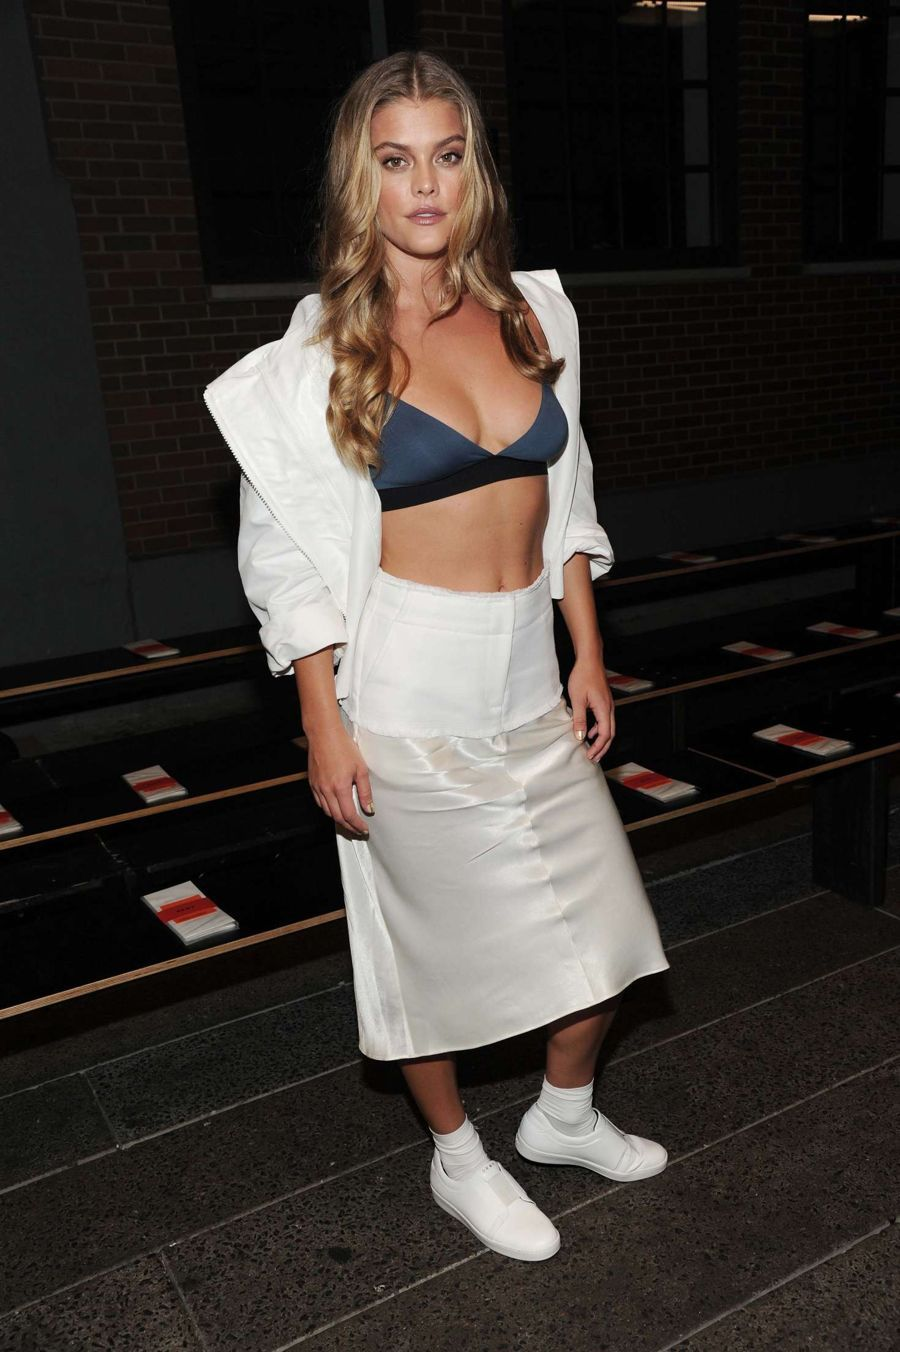 Nina Agdal - D K N Y's SS 2017 Show in New York City